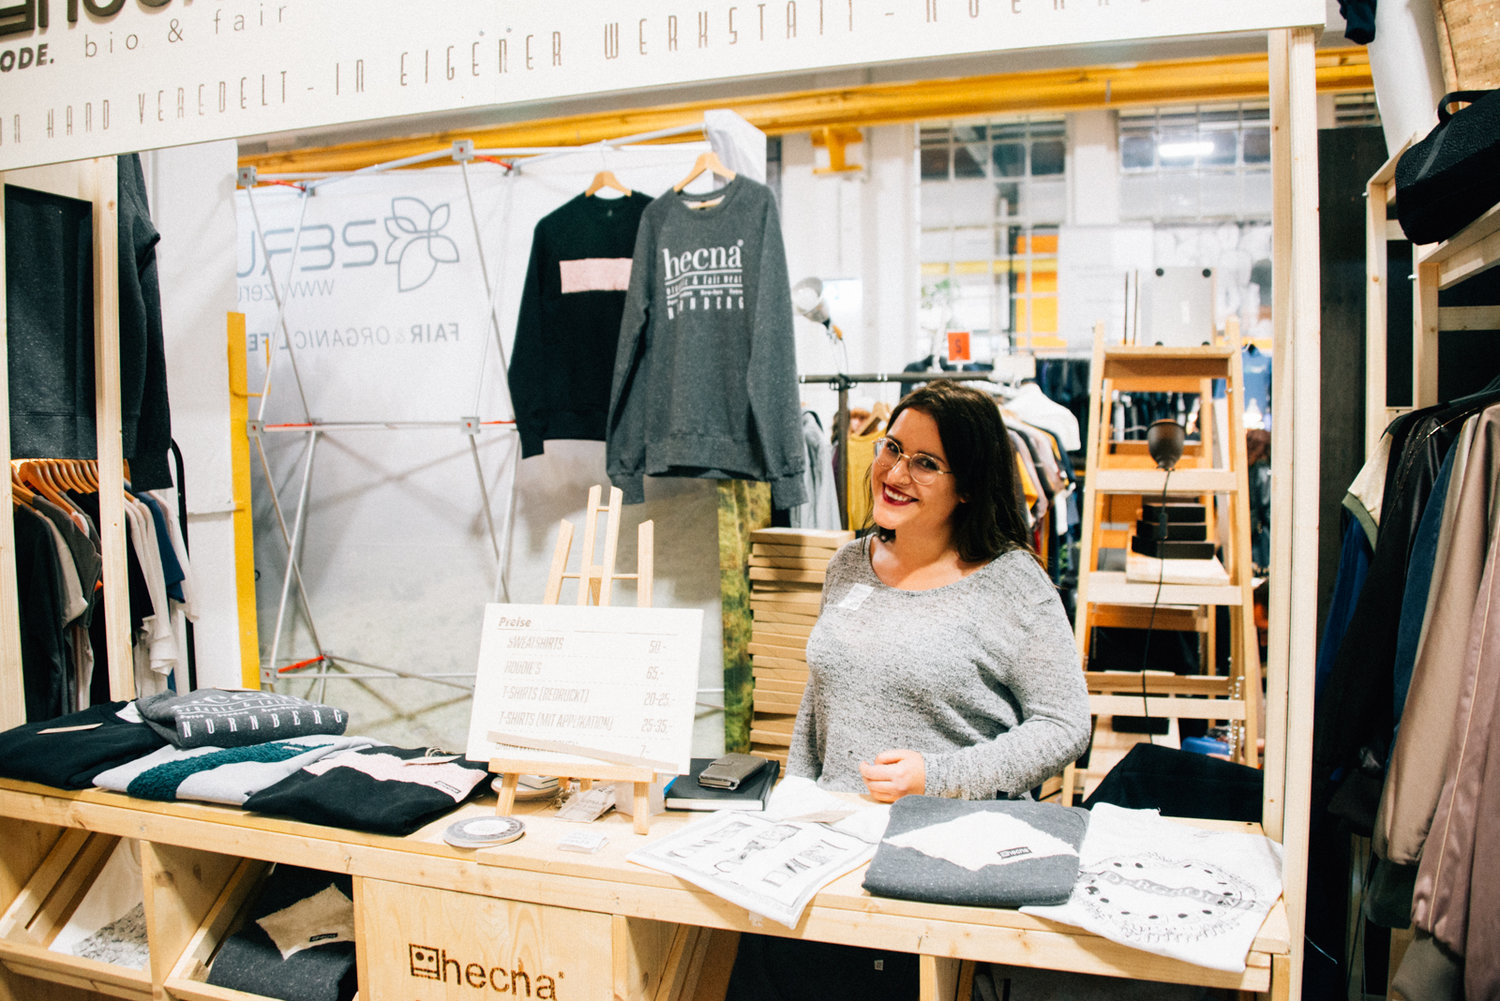 Hecna  fair trade & vegan clothing line, Nürnberg